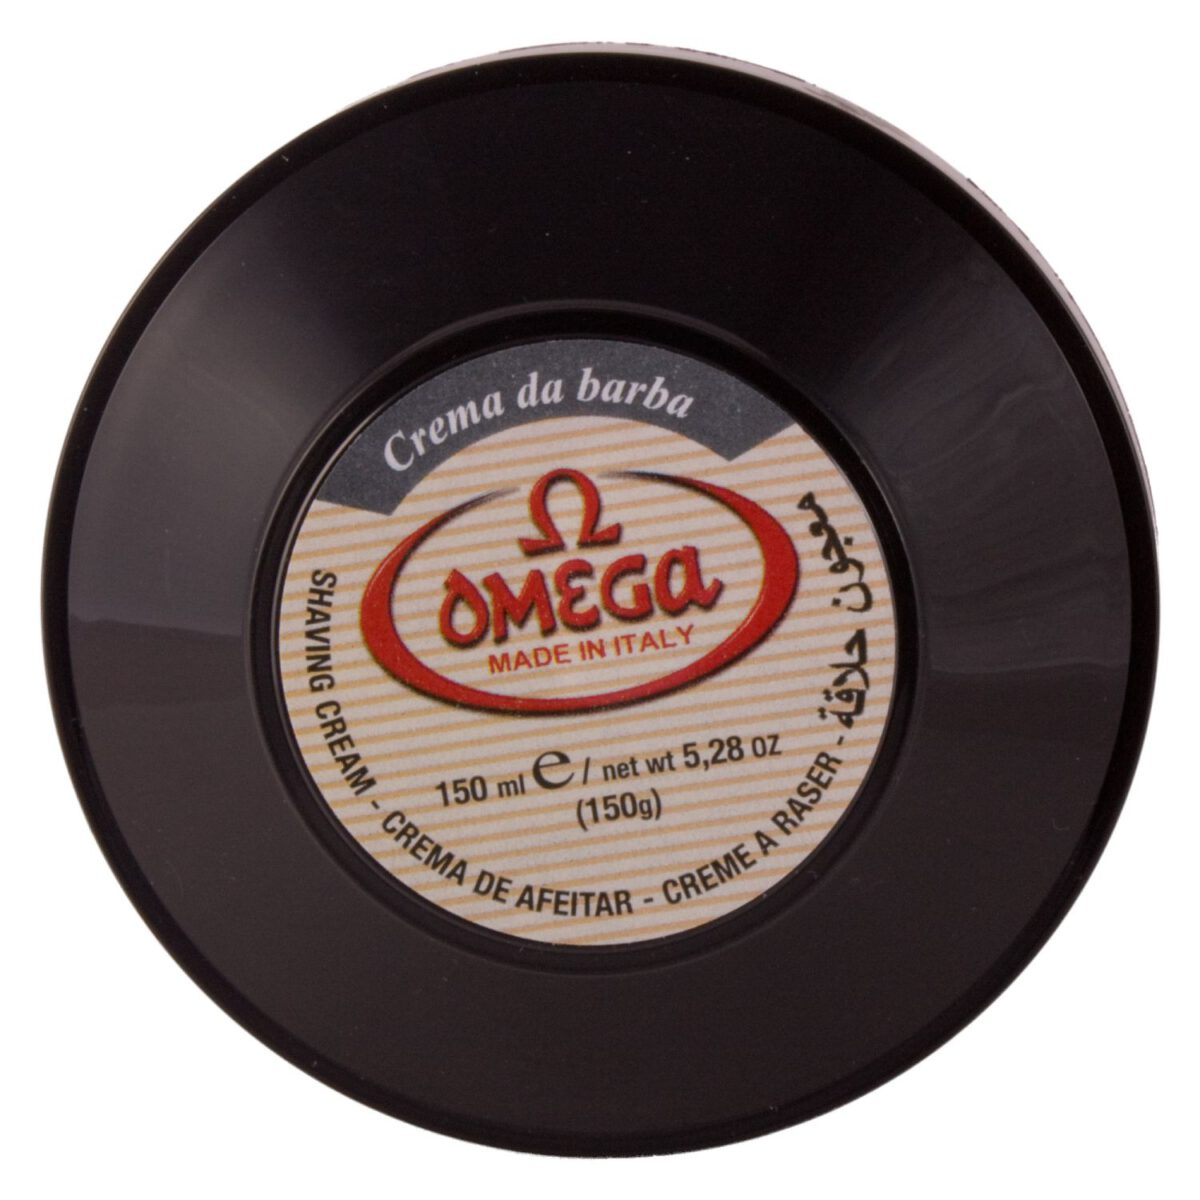 Omega traditional shaving cream